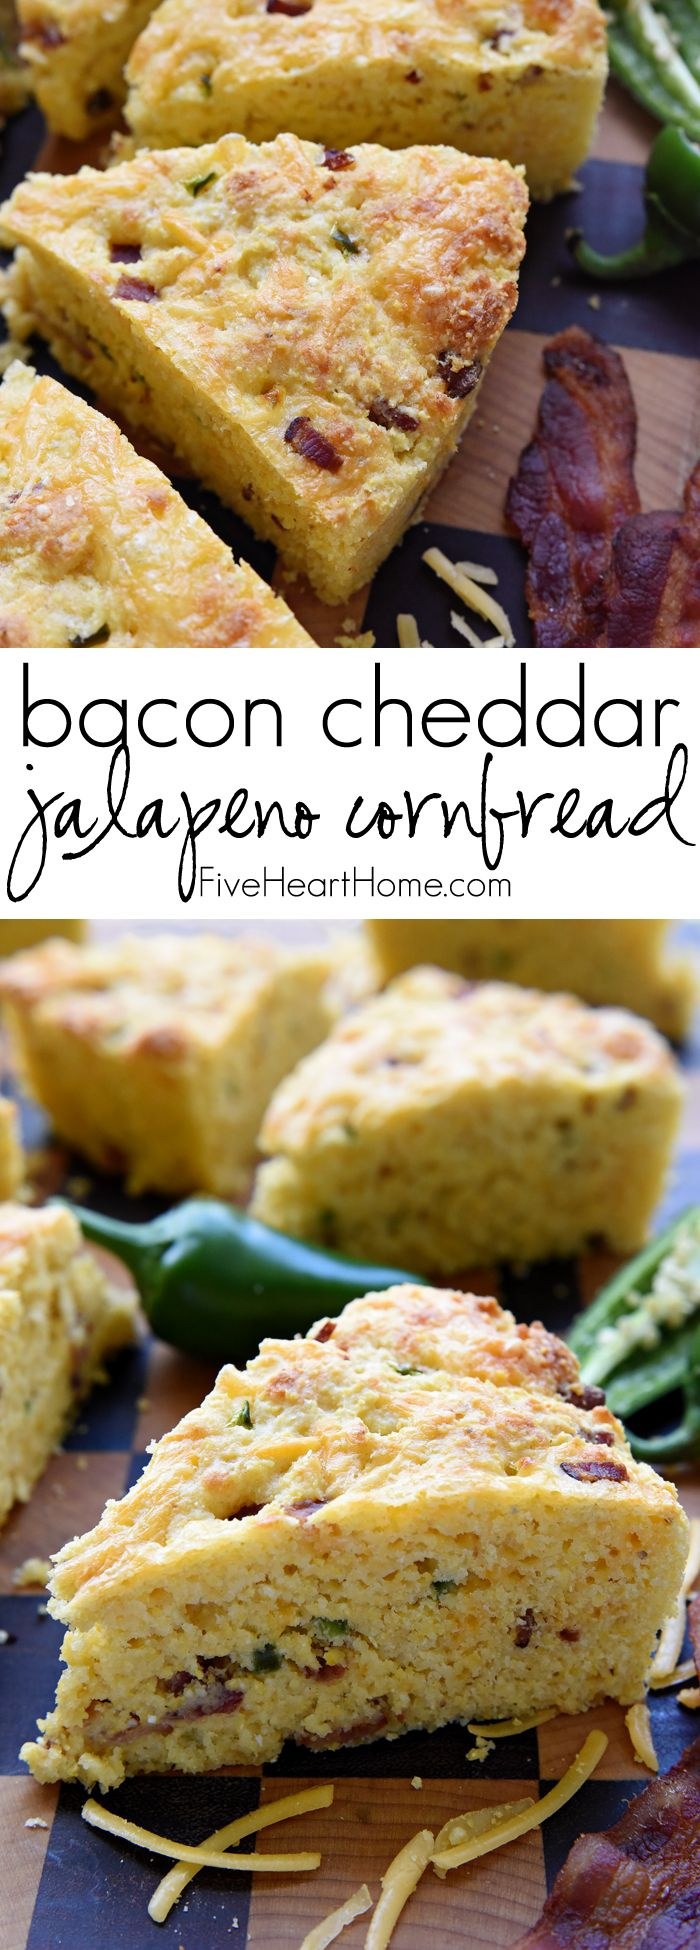 Bacon Cheddar Jalapeño Cornbread ~ moist, tender, and loaded with extra flavor from crispy bacon, gooey cheese, and spicy jalapeño, making it the perfect accompaniment for all of your favorite soups, stews, and chilis! | FiveHeartHome.com